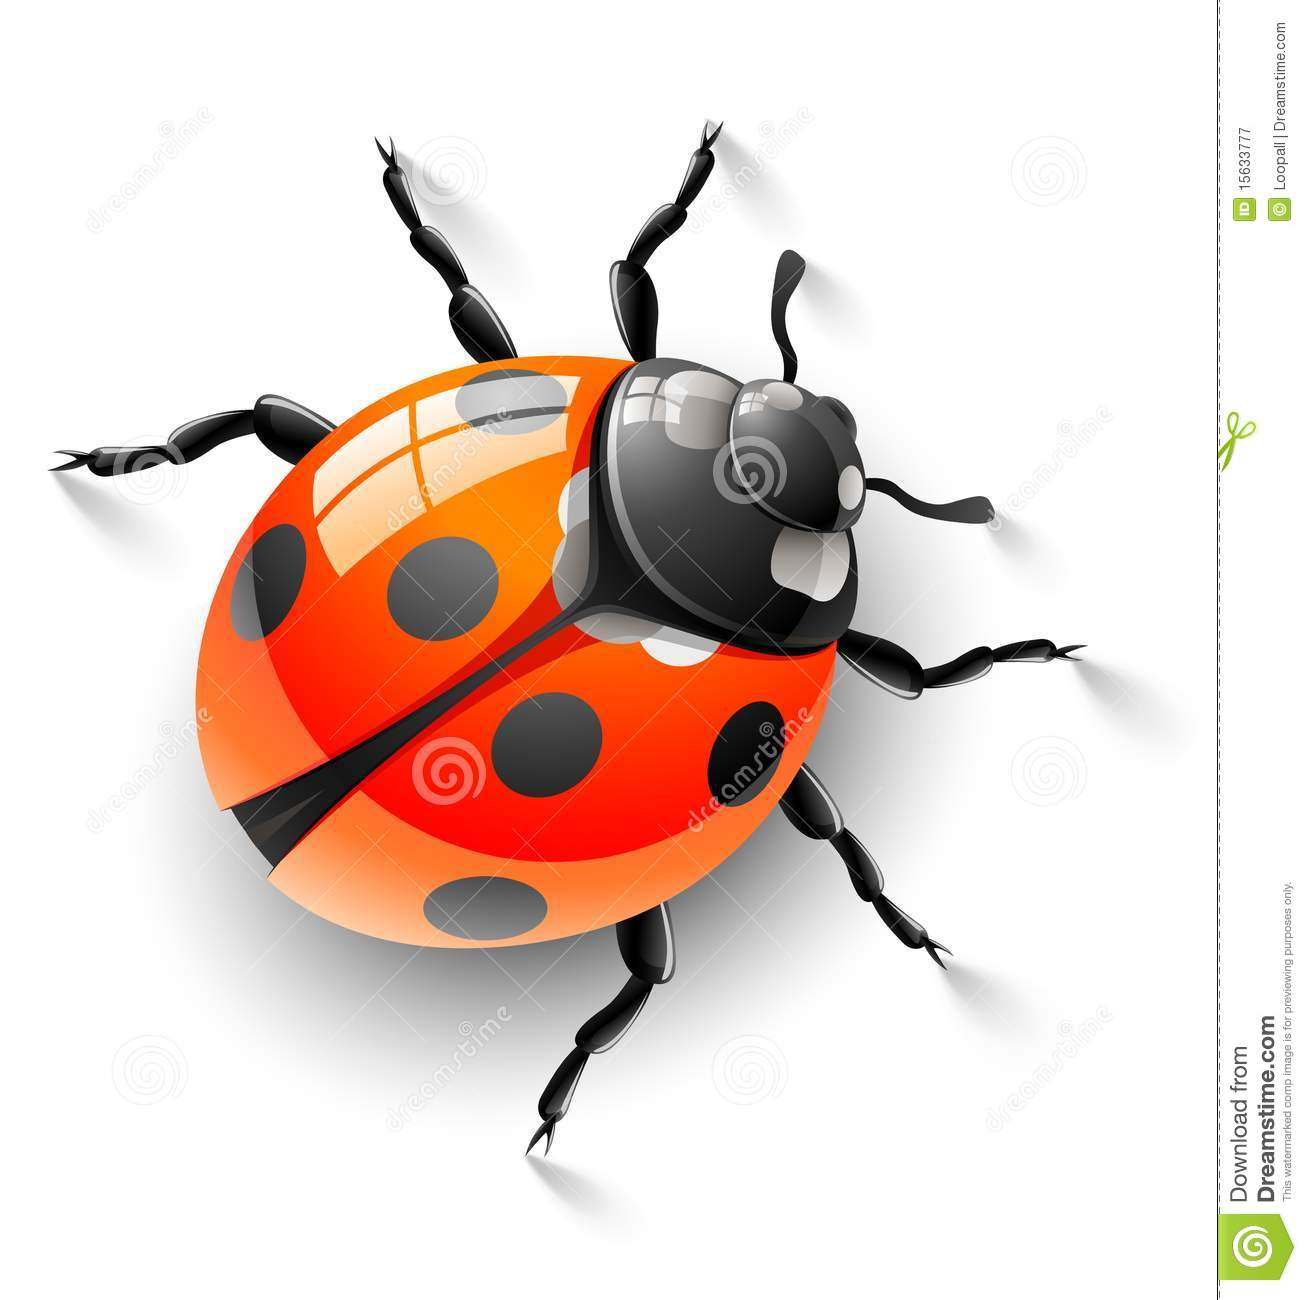 red ladybug background